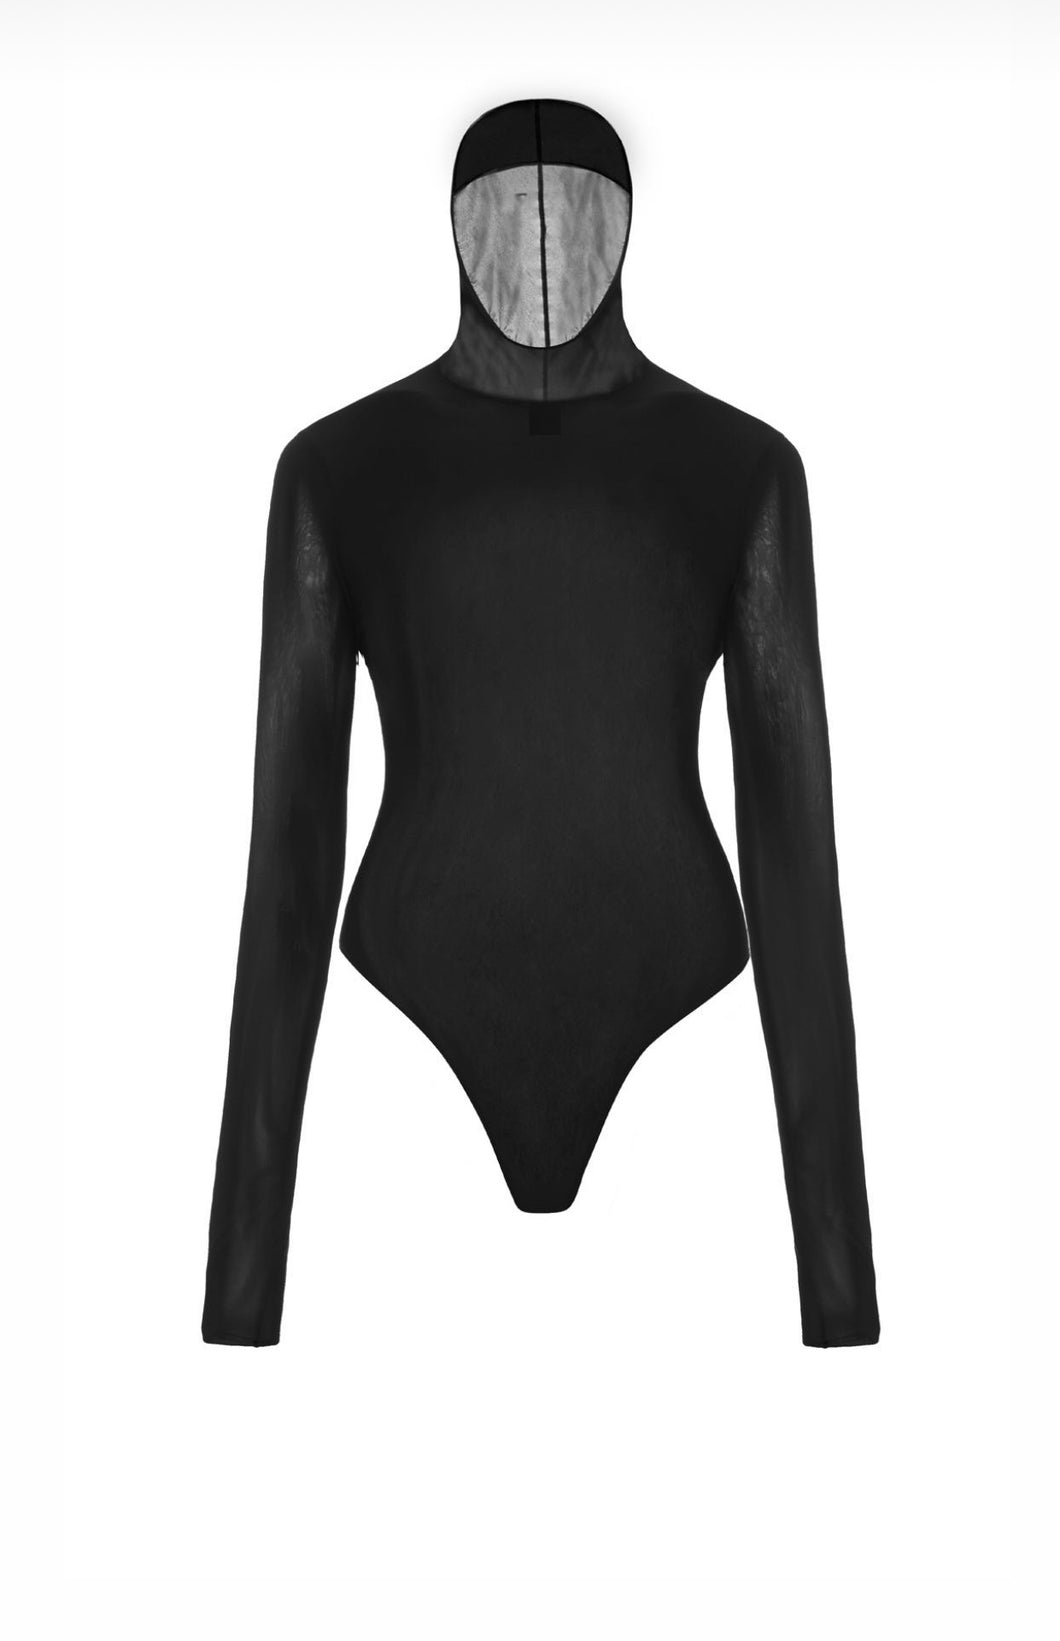 Tender and Dangerous Bodysuit with Hood